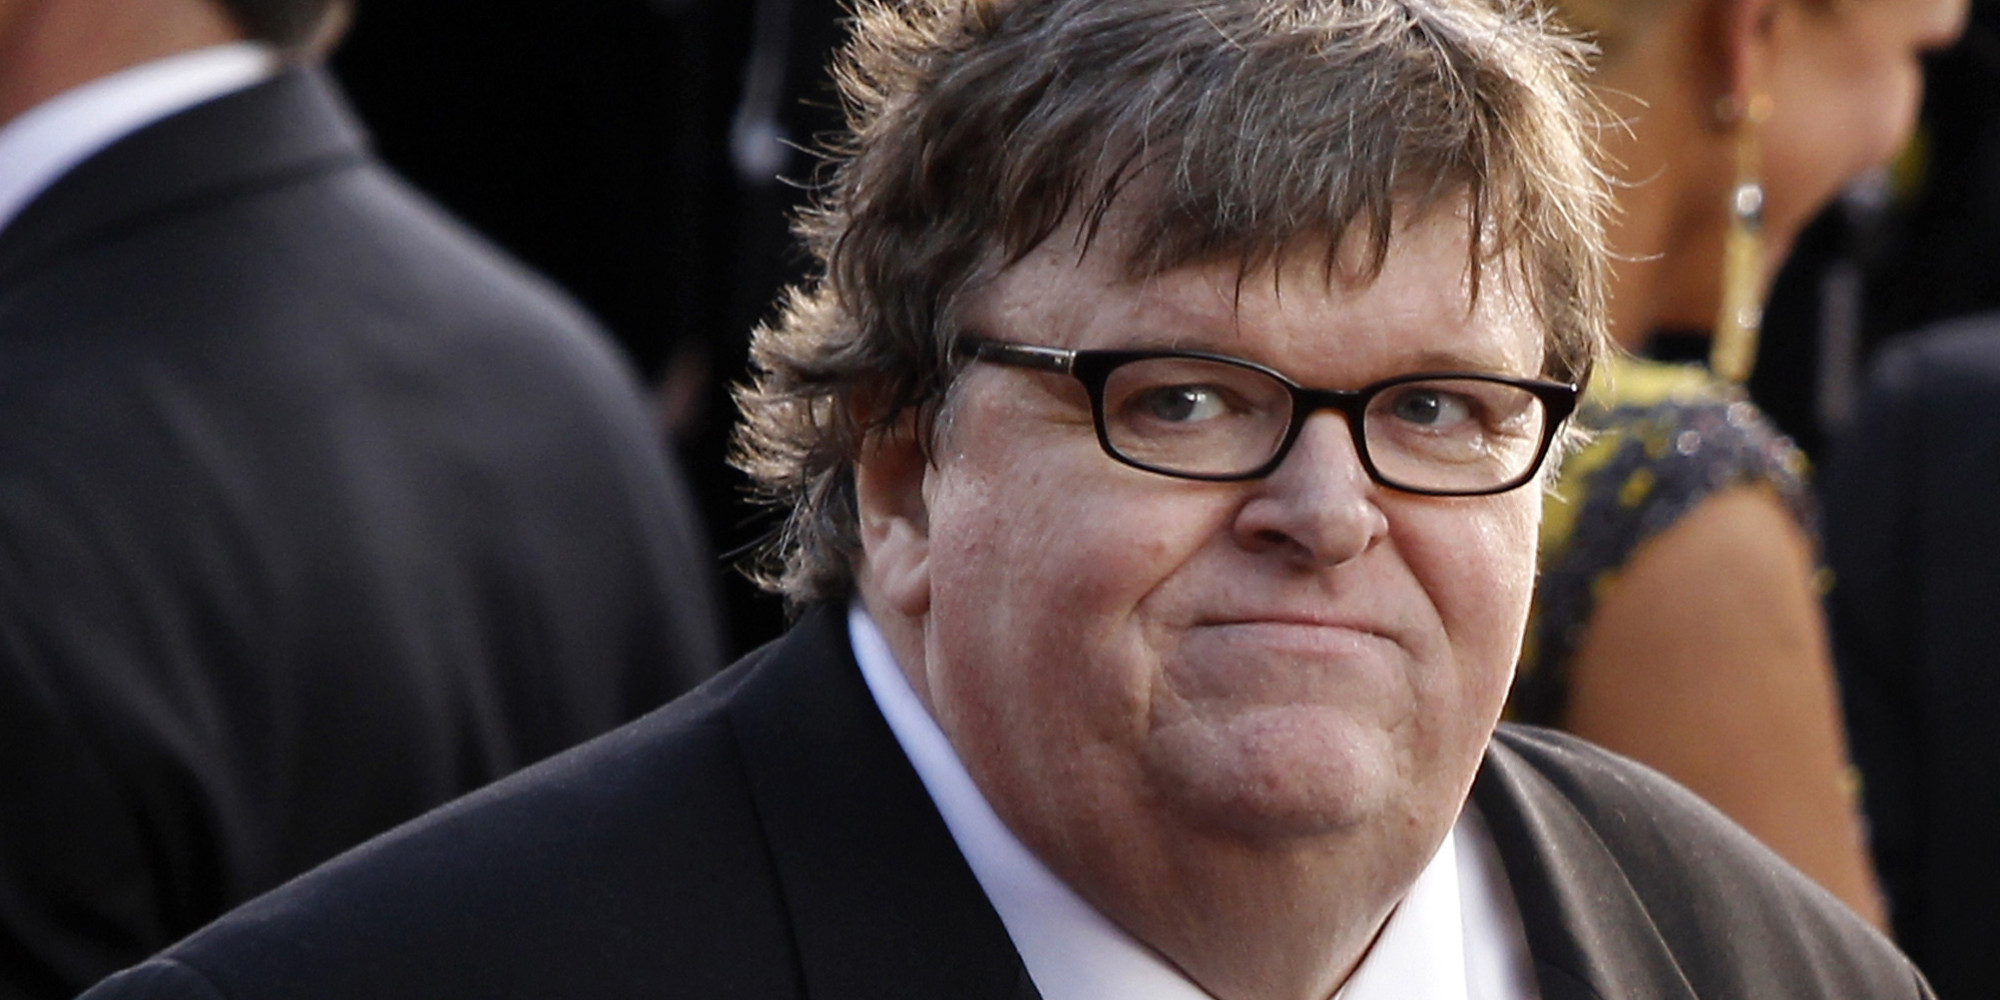 michael moore Michael francis moore (born april 23, 1954 in davison, michigan, usa) is an american writer and moviemaker he is known for his strong liberal political views.